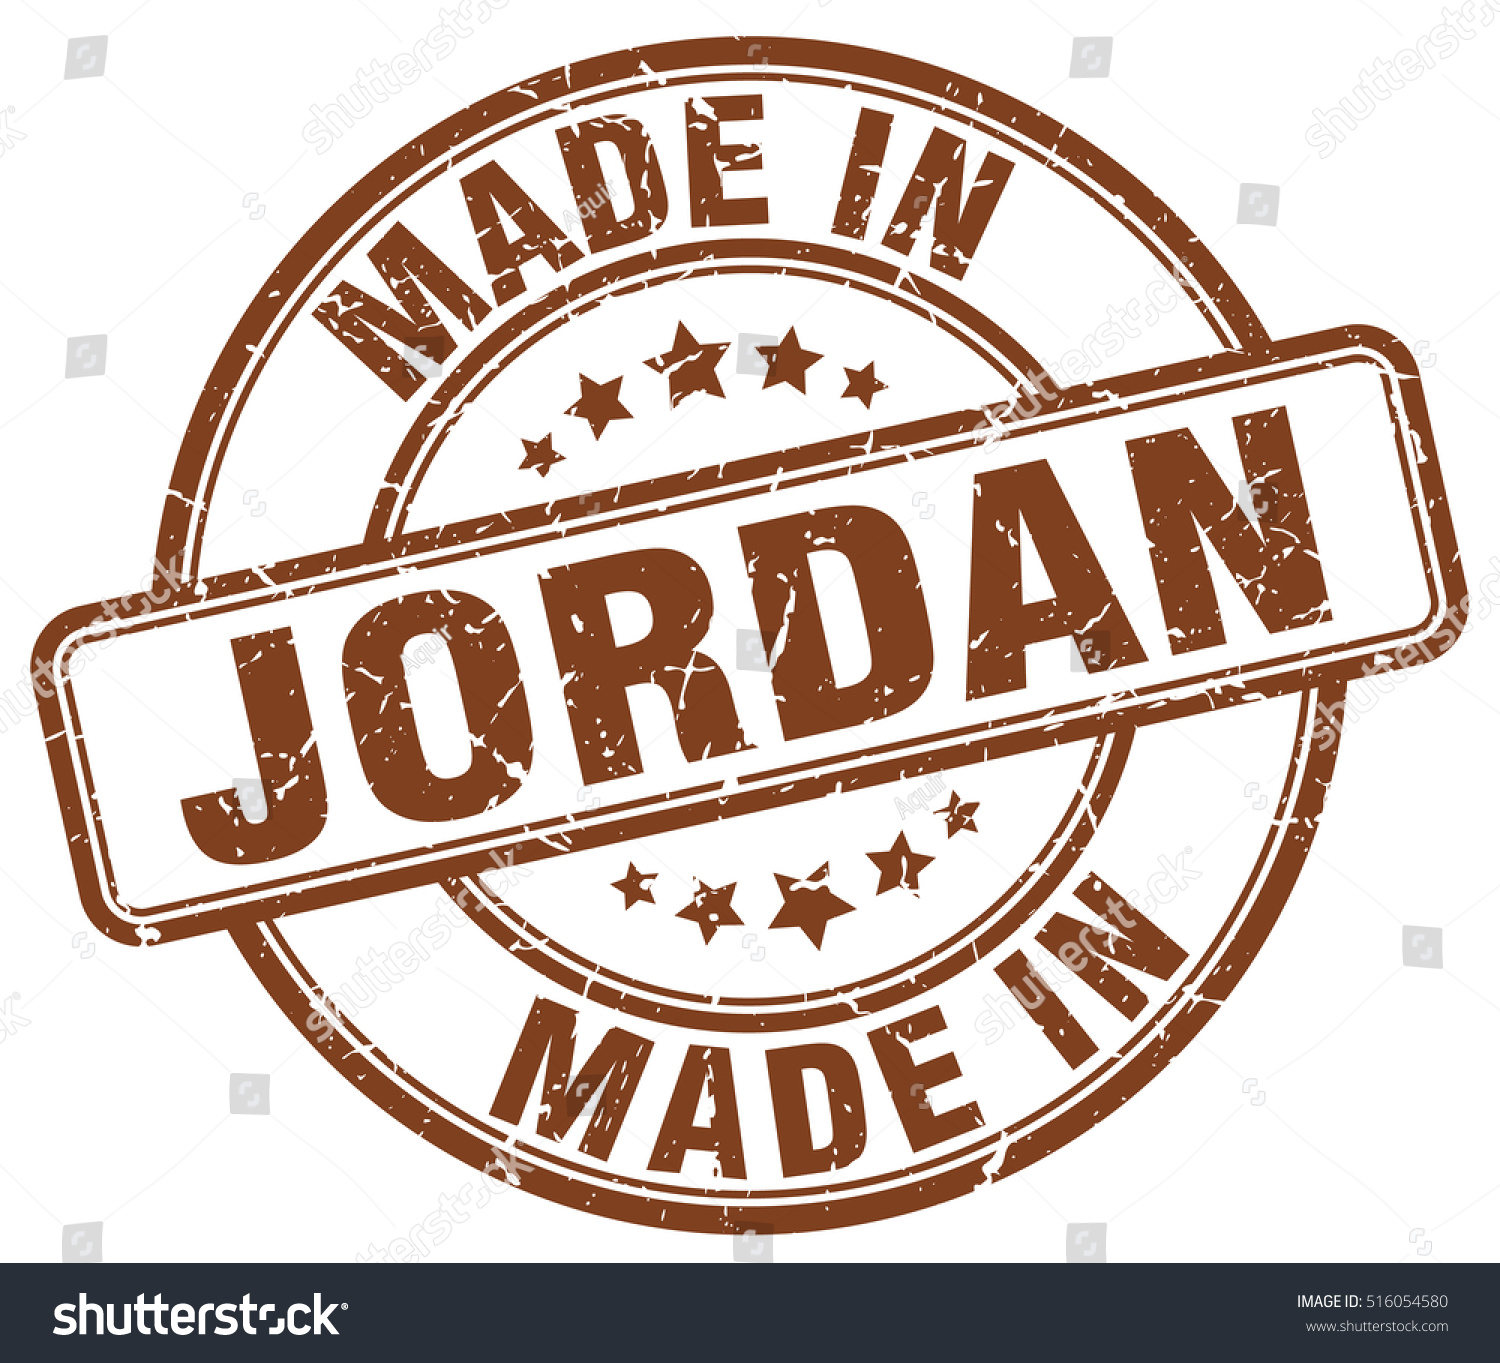 Made jordan stamp stock vector 516054580 shutterstock made in jordan stamp biocorpaavc Gallery